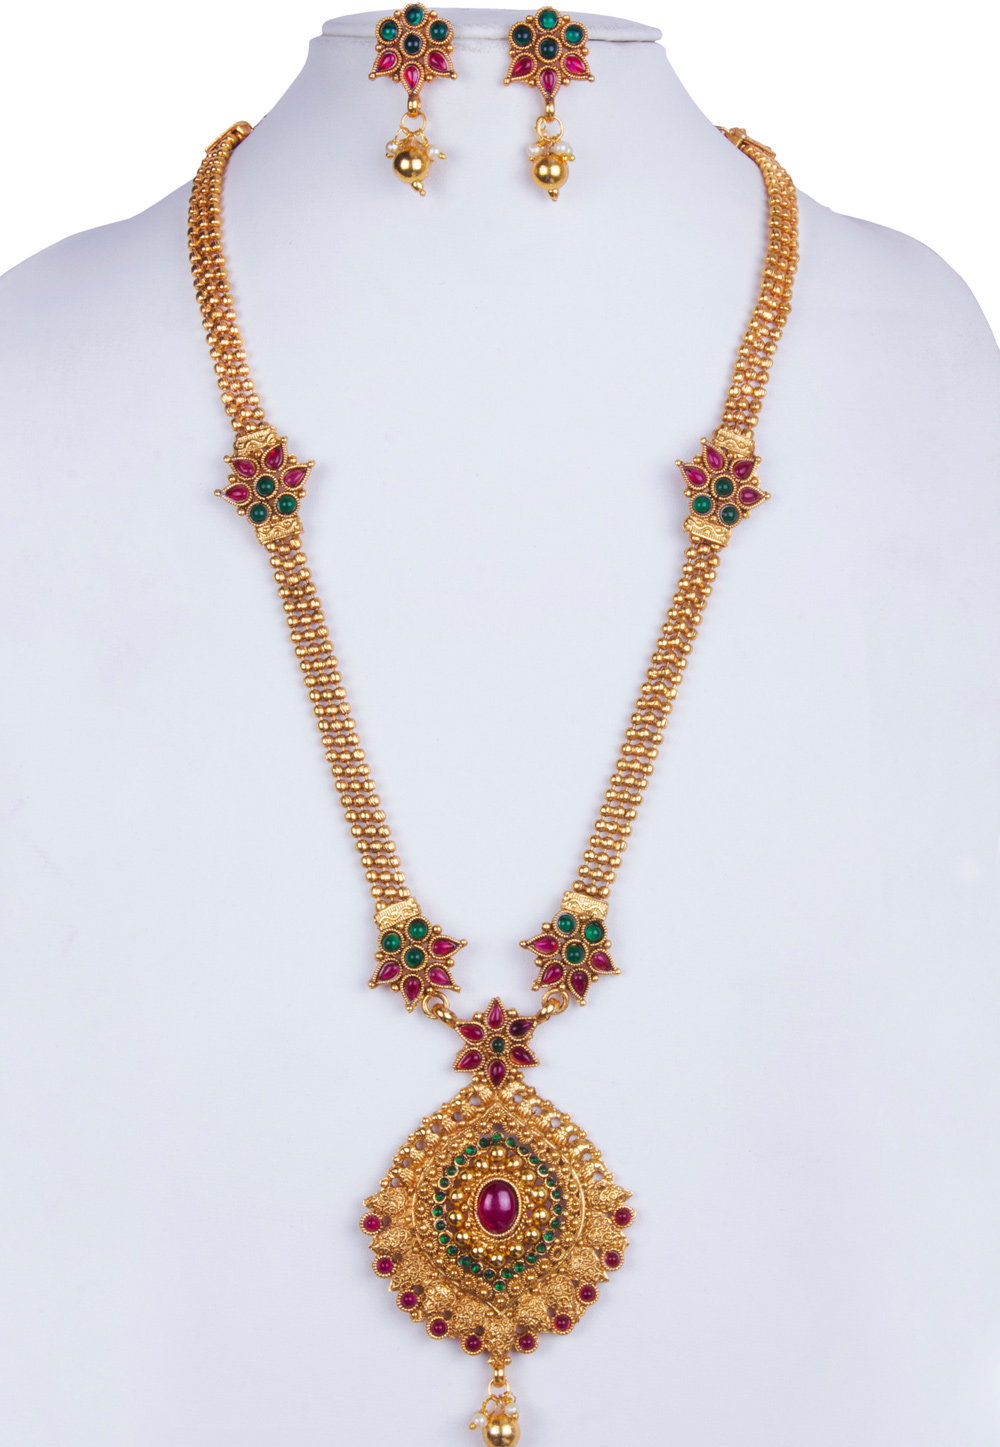 Green Alloy Necklace With Earrings 157139